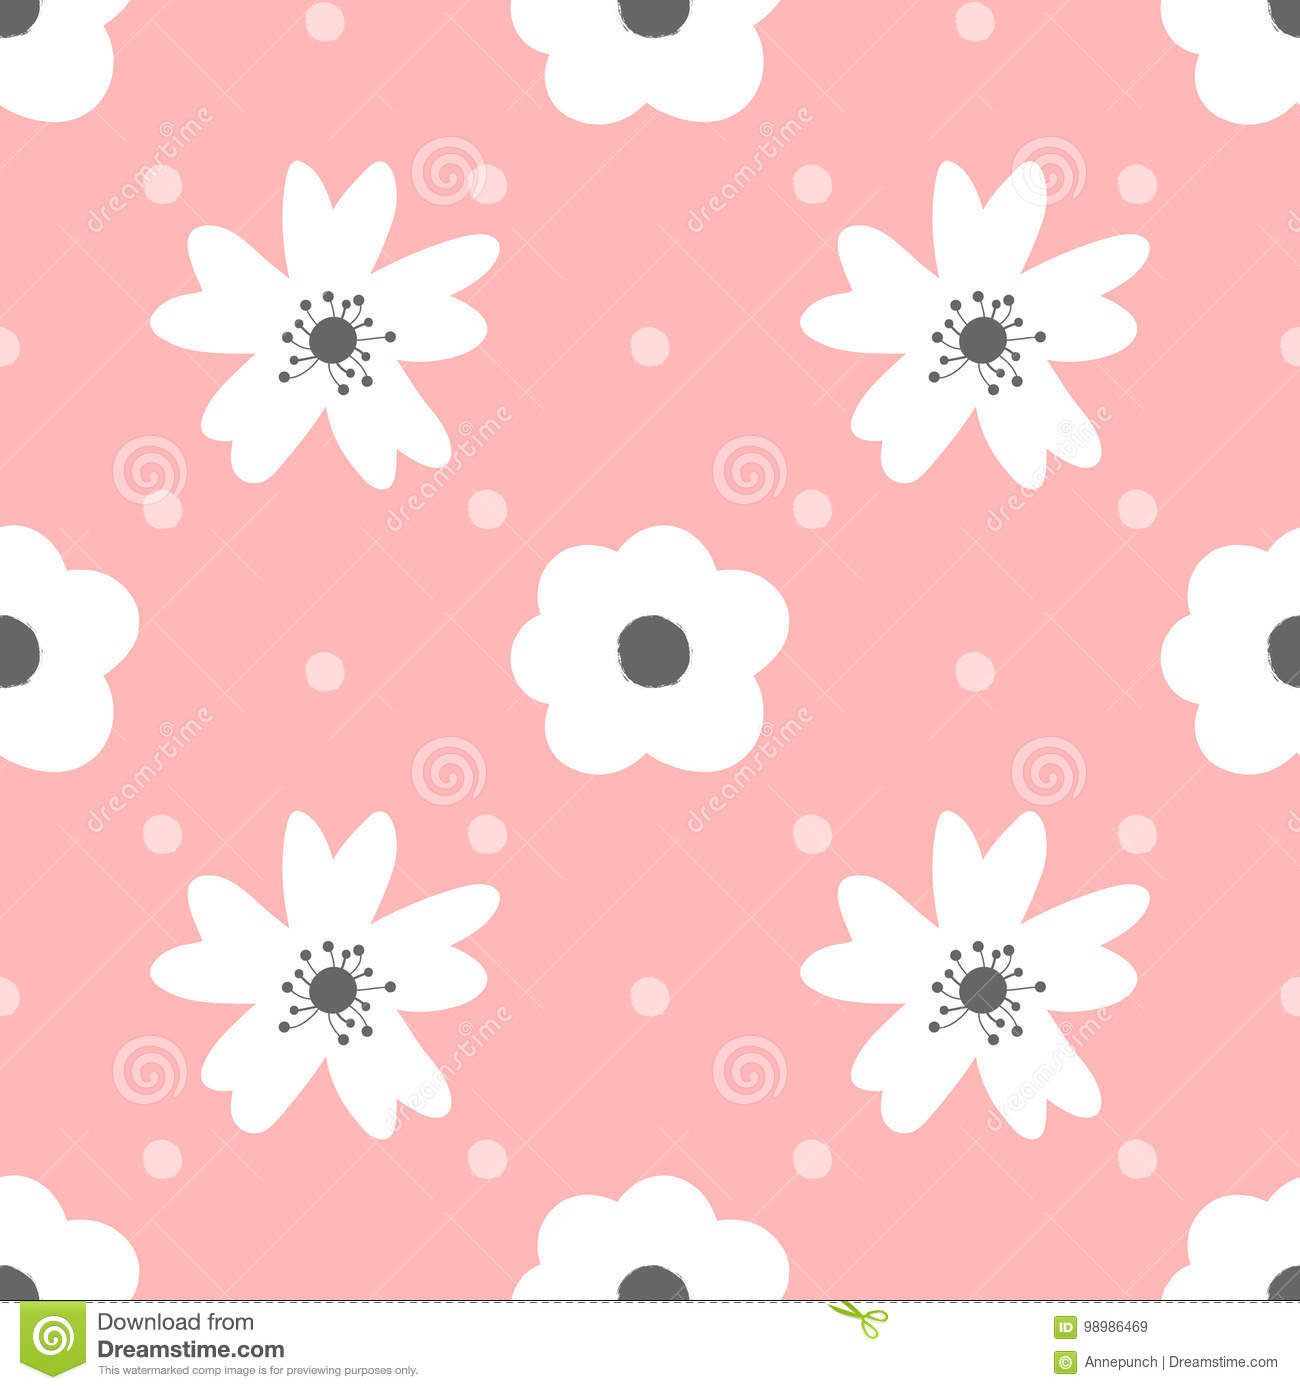 Cute Flowers And Polka Dot Seamless Pattern For Girls Stock Vector